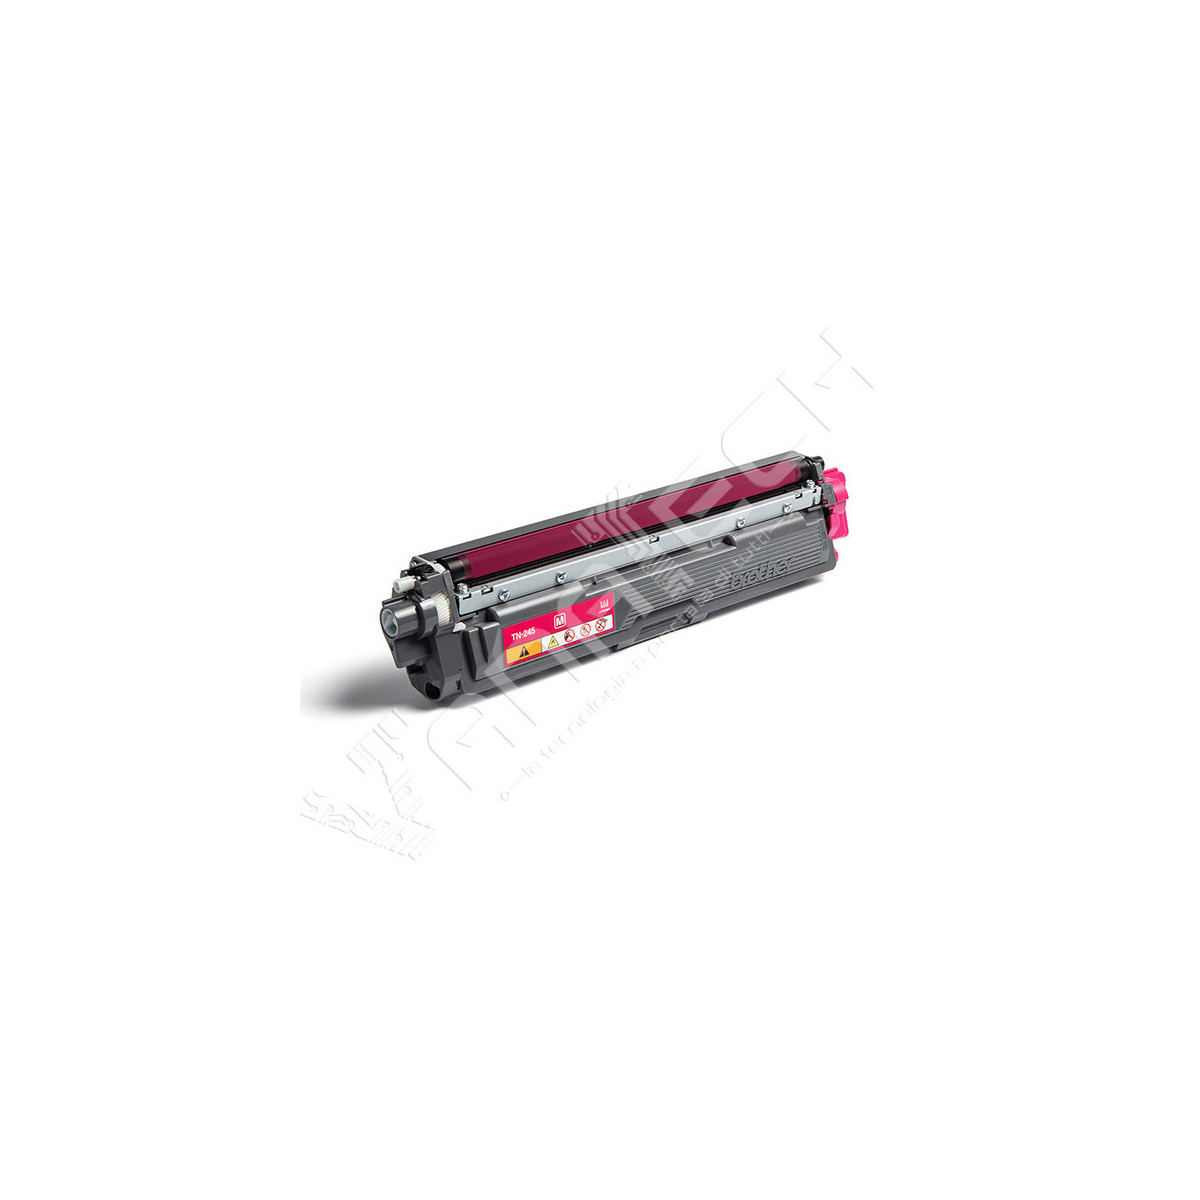 PROCESSORE CPU INTEL CORE i5-9400F (9MB 2.90GHz Turbo 4.10GHz) Box [BX80684I59400F]